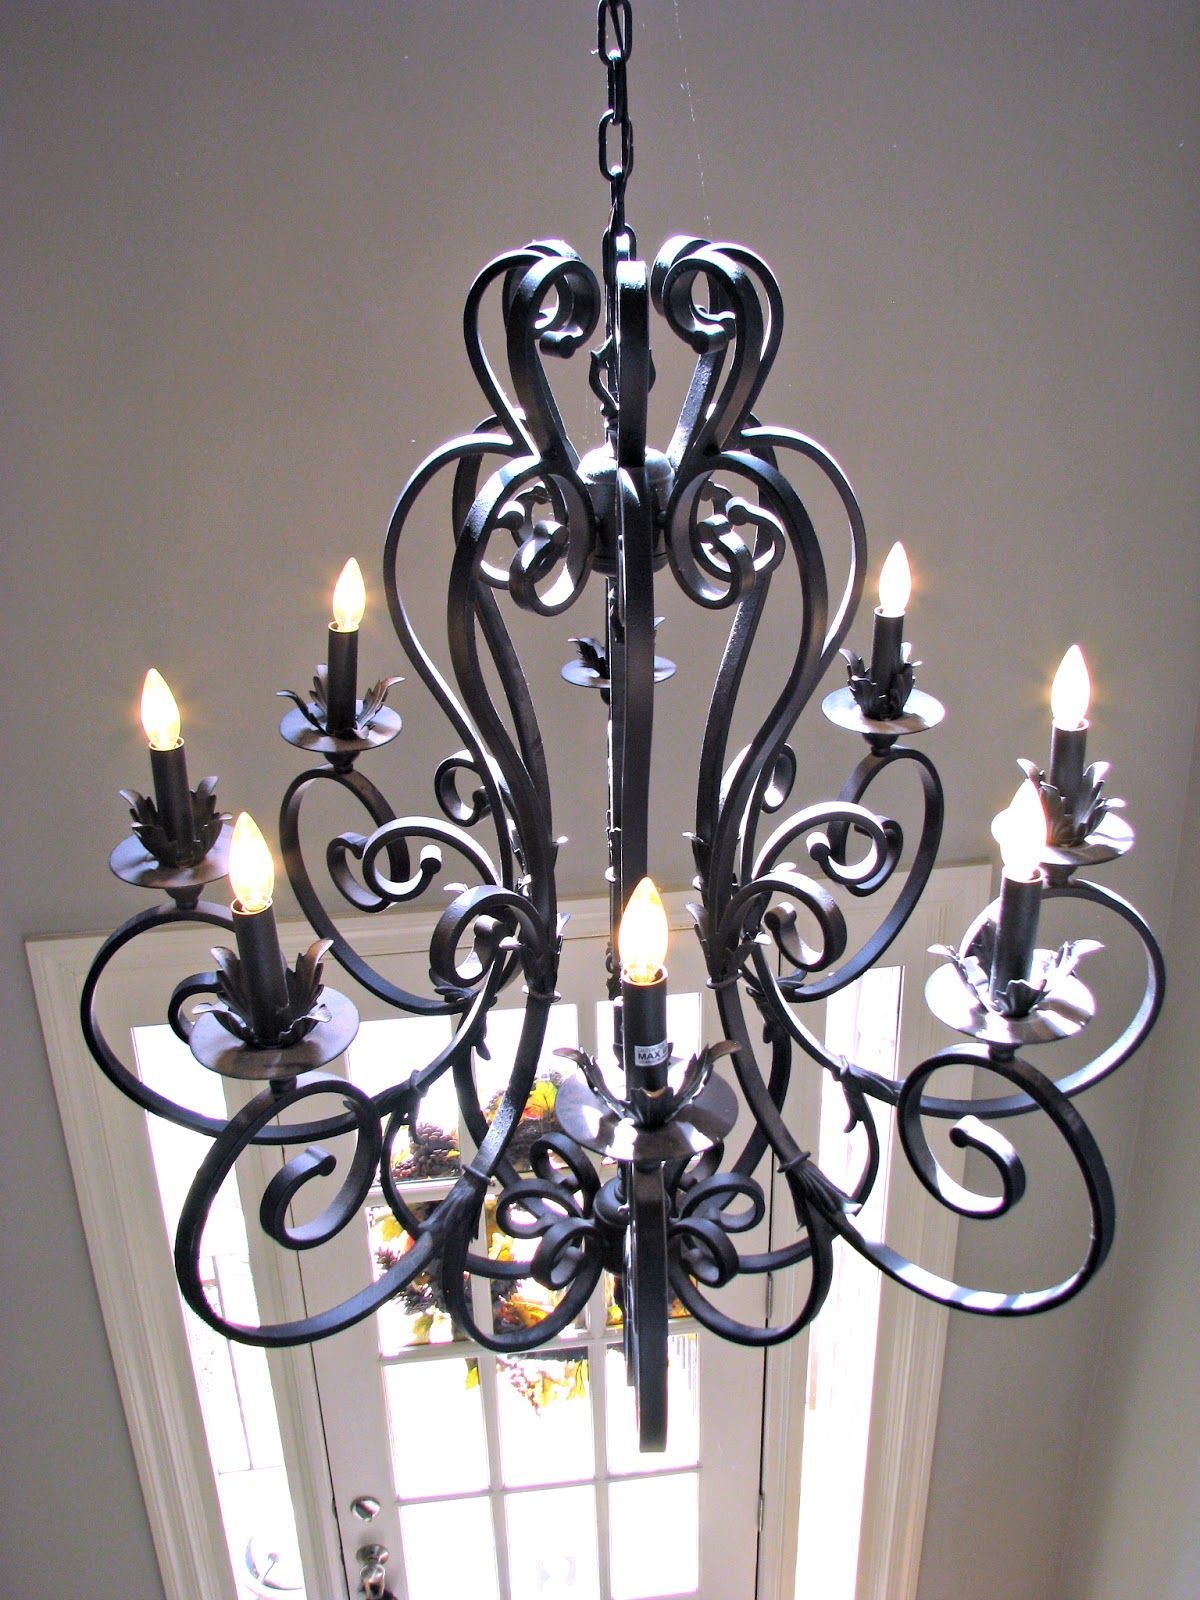 Foyer Chandelier Wrought Iron : Homemadeville your place for homemade inspiration home